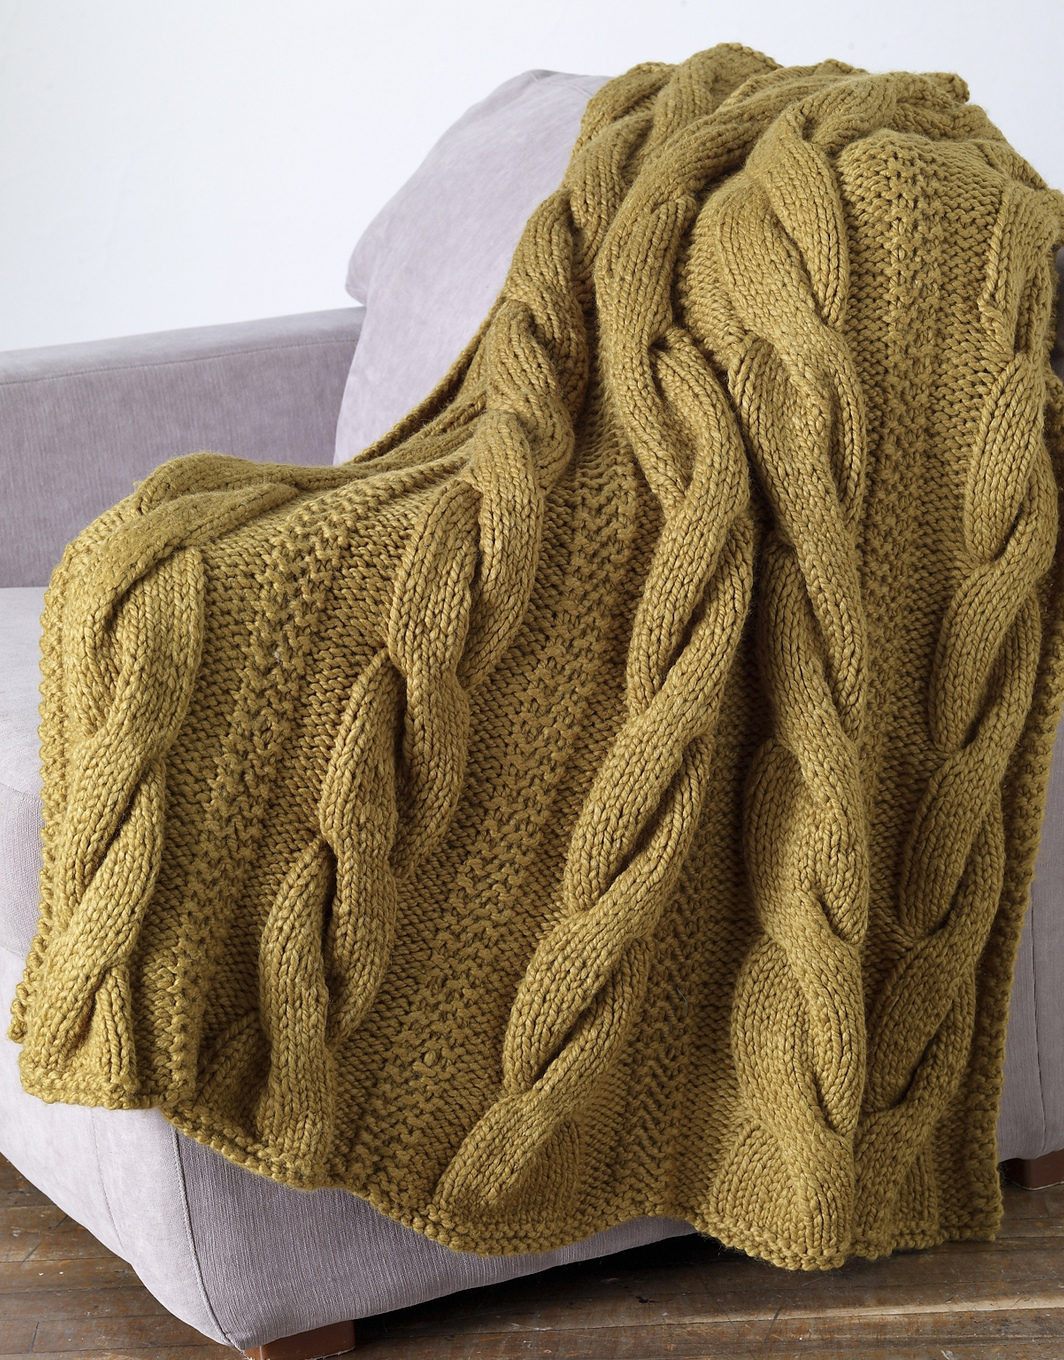 Inspirational Afghans In Sections Knitting Patterns Free Easy Knit Afghan Patterns Of Top 40 Ideas Free Easy Knit Afghan Patterns